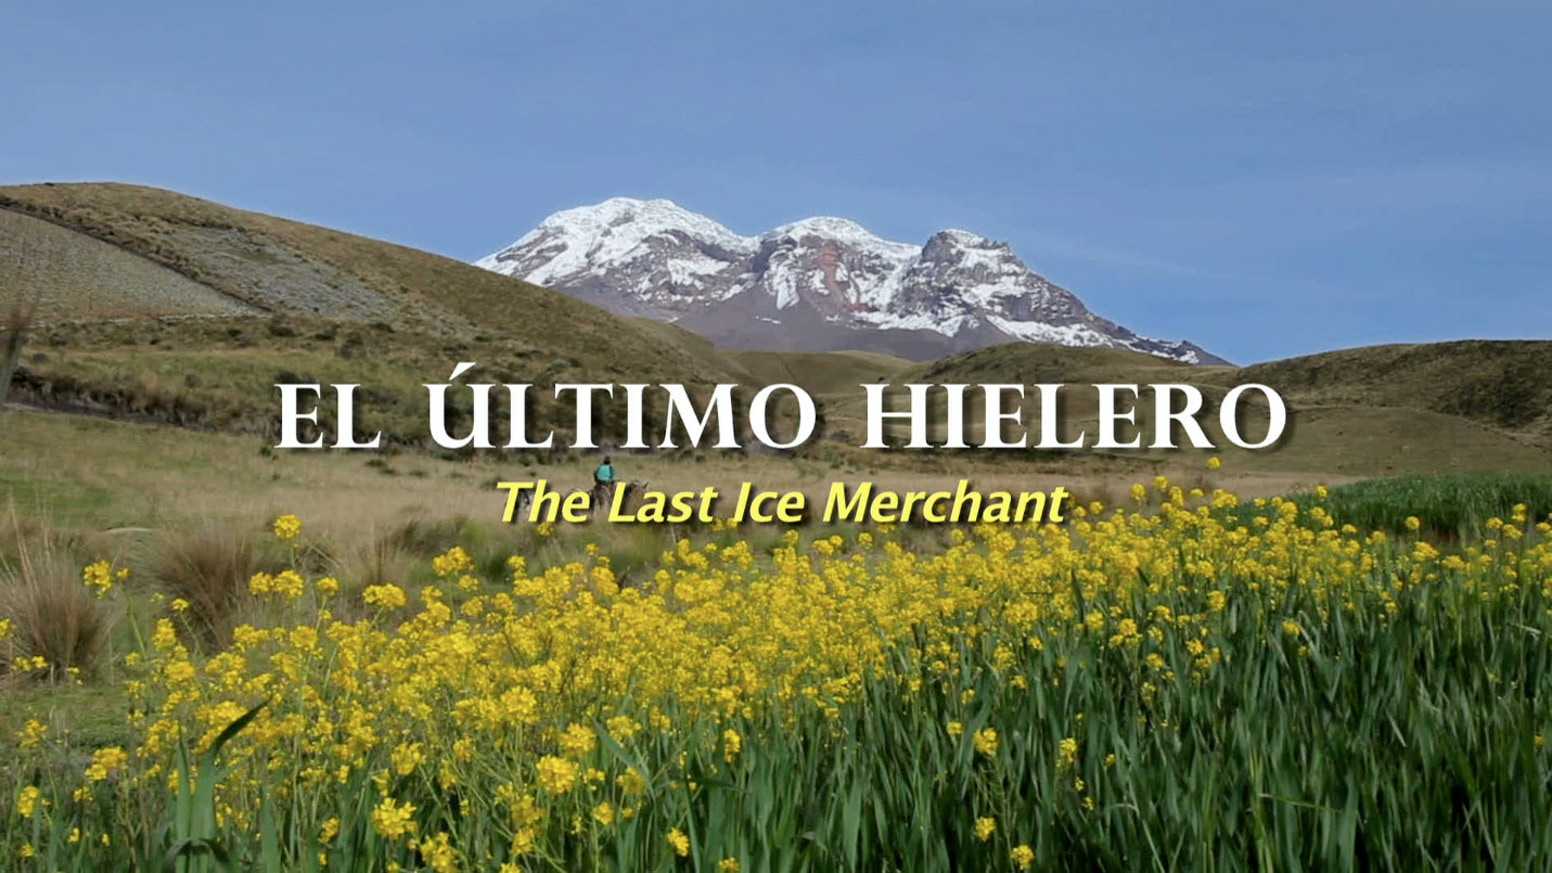 El Último Hielero (the Last Ice Merchant)